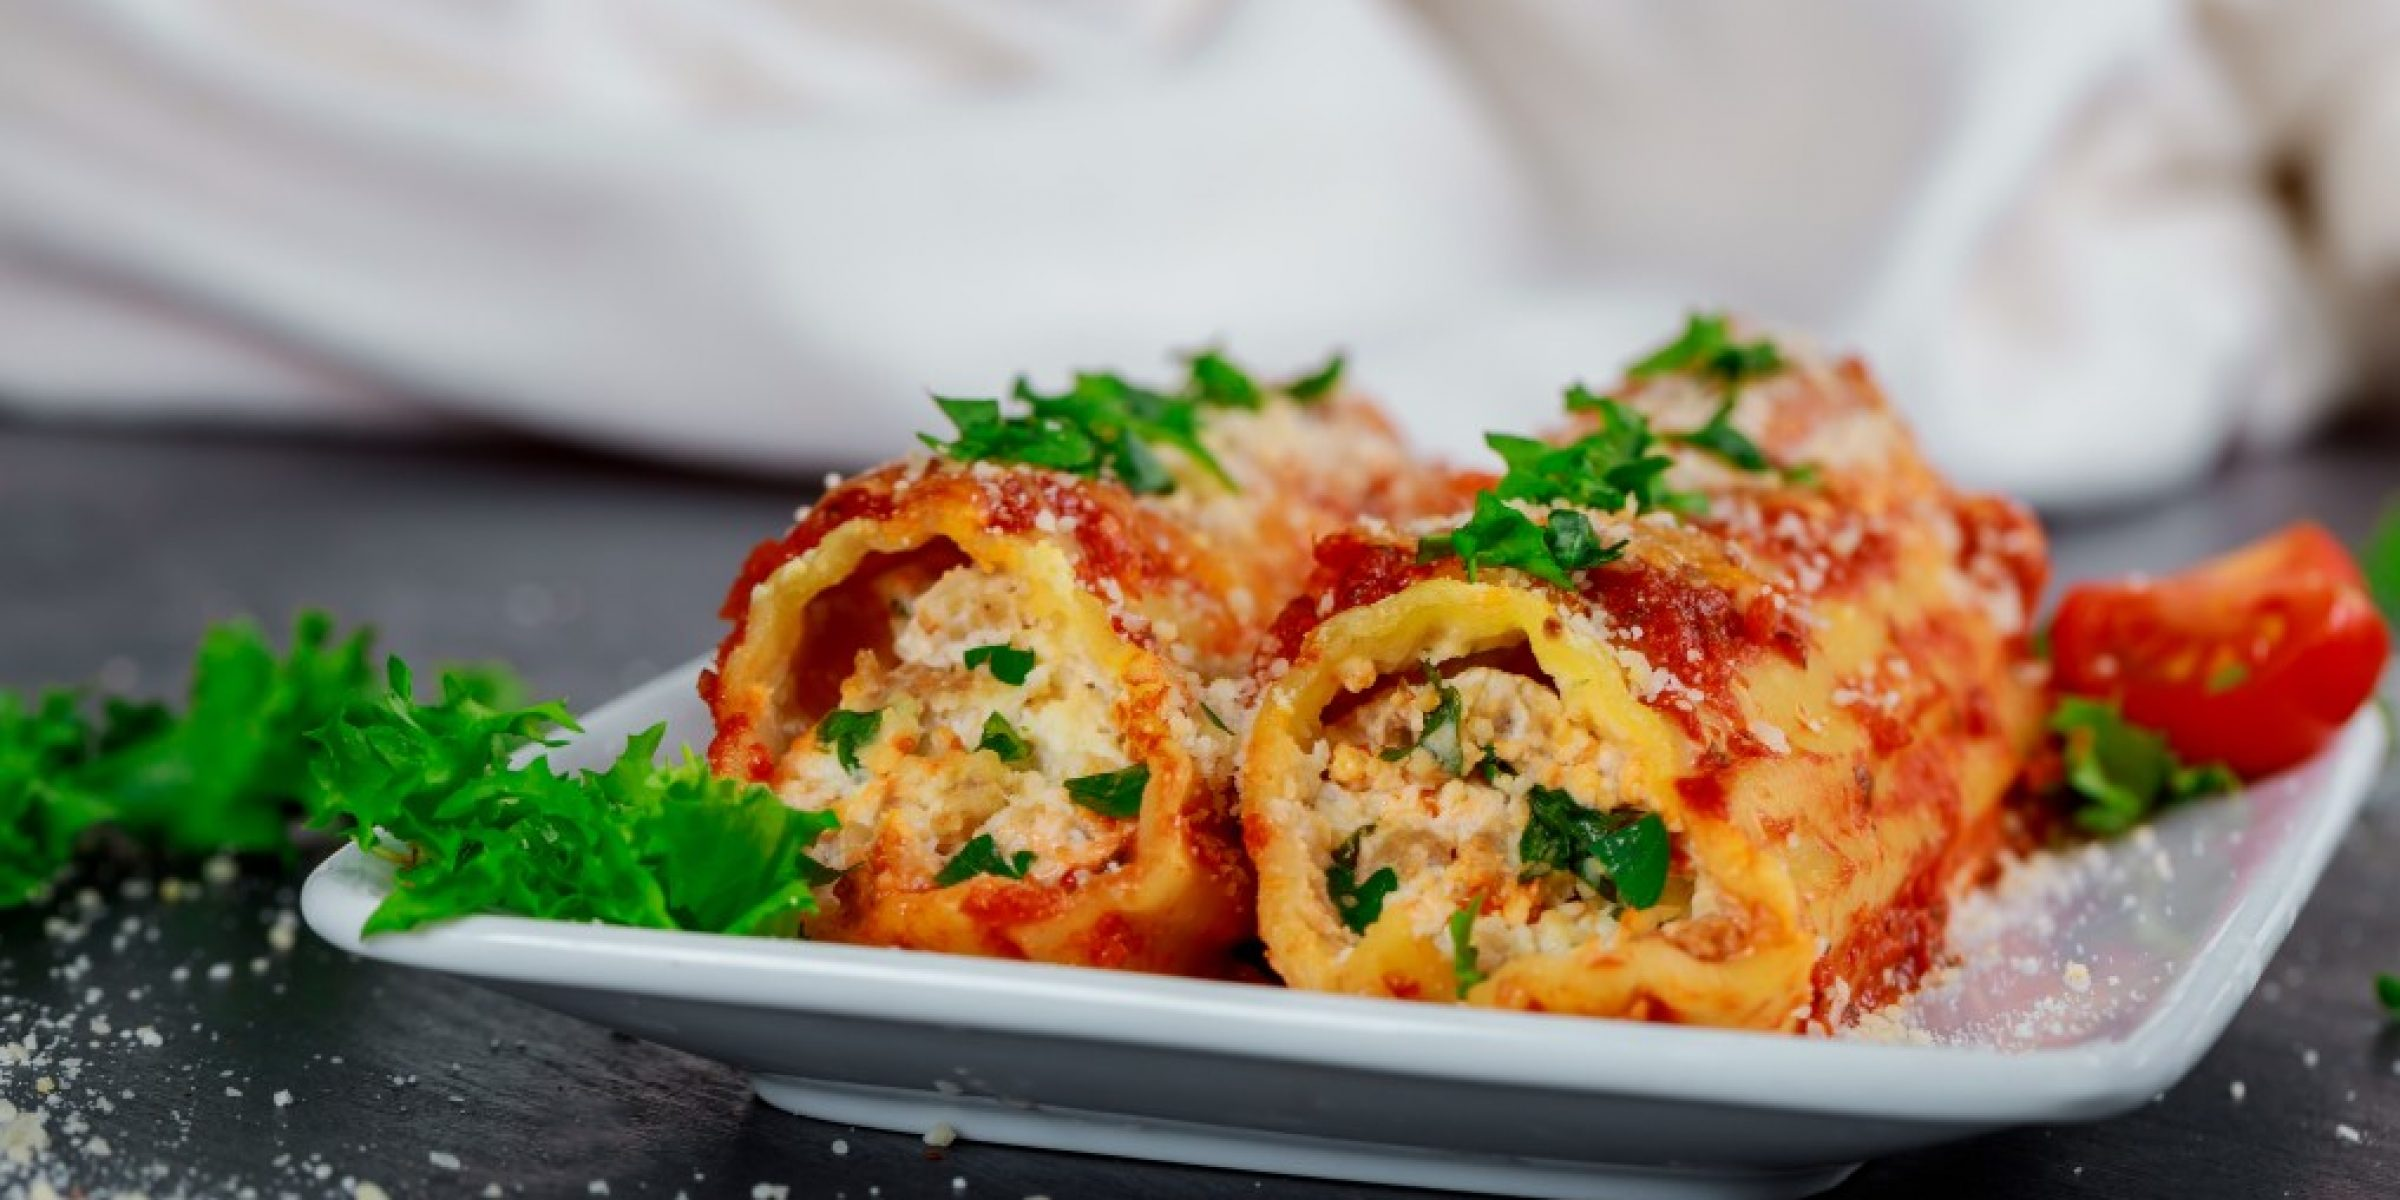 cannelloni-with-meat-cheese-and-tomato-sauce_t20_eVmoRm